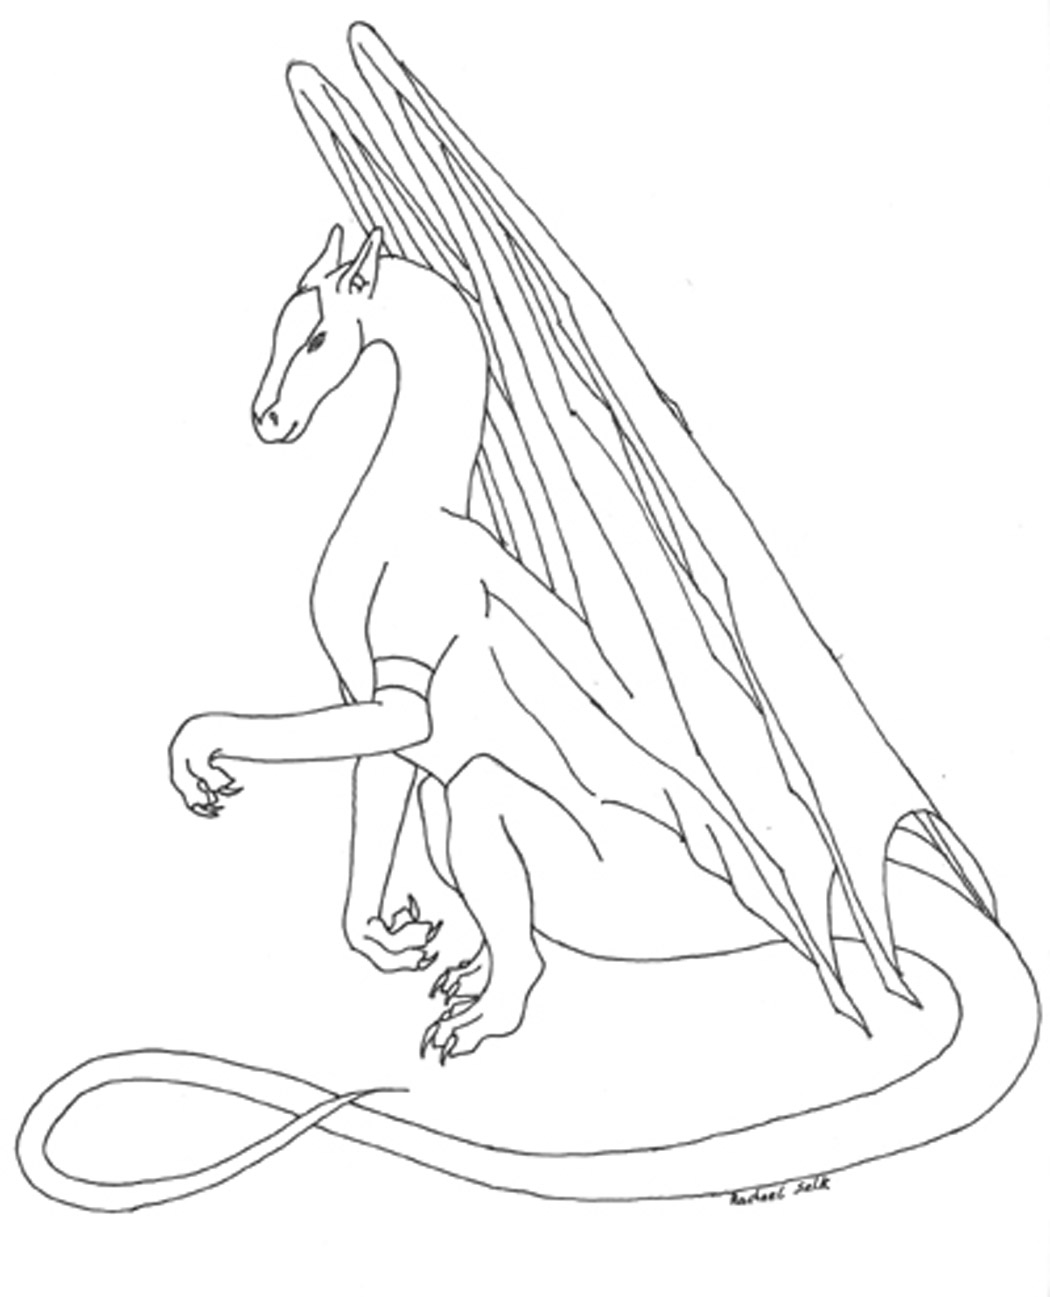 dragon coloring pages free - photo#27